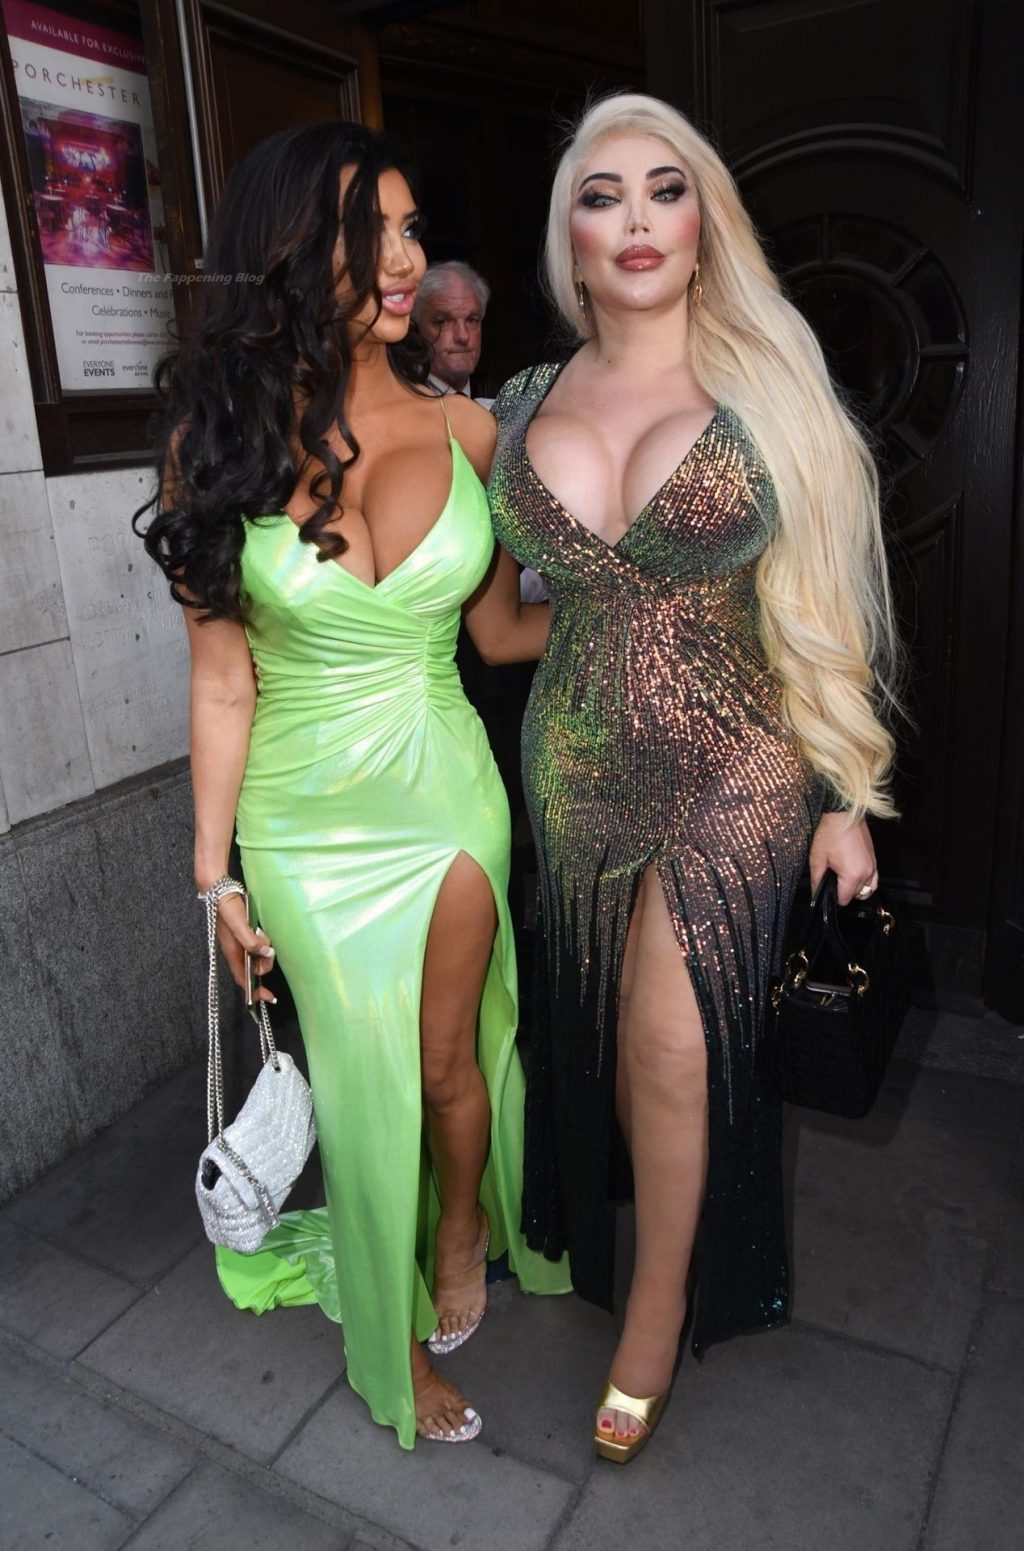 Chloe Khan Gives a Leggy Display in a Green Dress on Her Way to the Reality TV Awards (20 Photos)